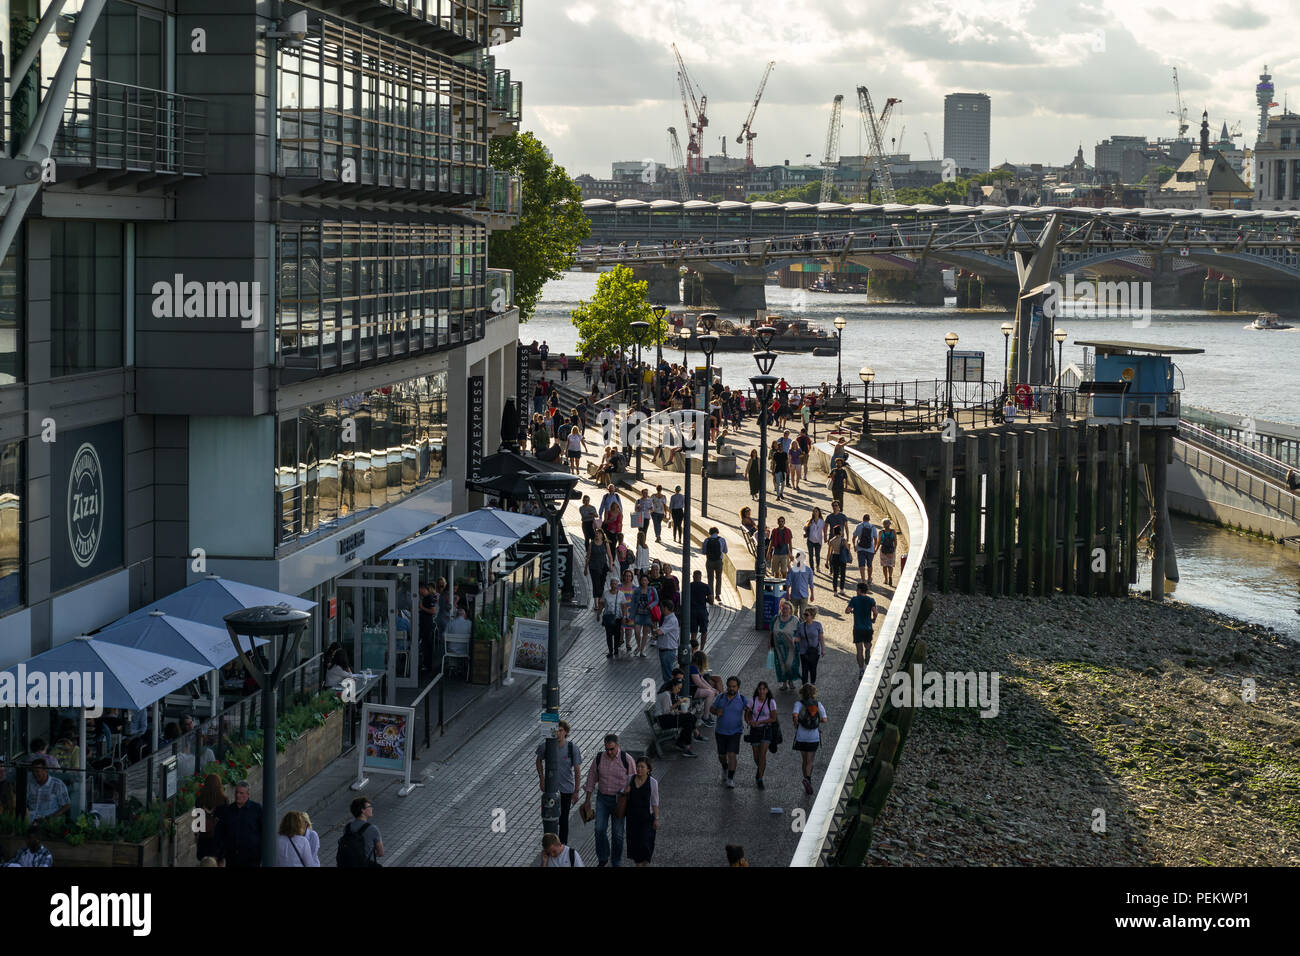 Riverside House building with Zizzi restaurant, people walking along Bankside with the river Thames and Millennium Bridge in background, London, UK Stock Photo